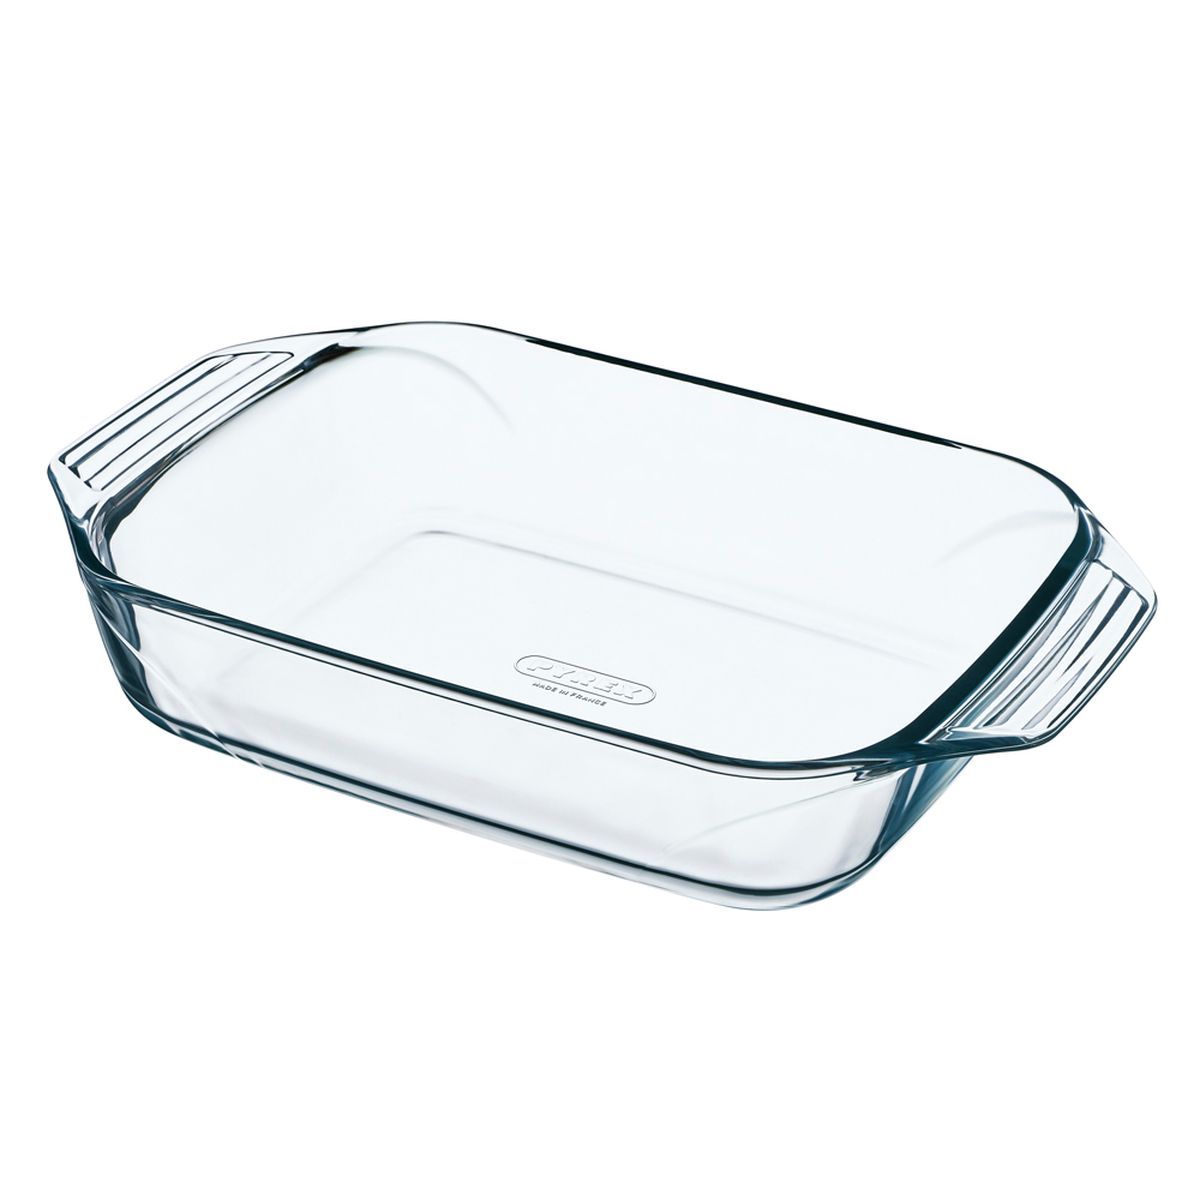 Plat à  four 35 x 23 cm Optimum - Pyrex